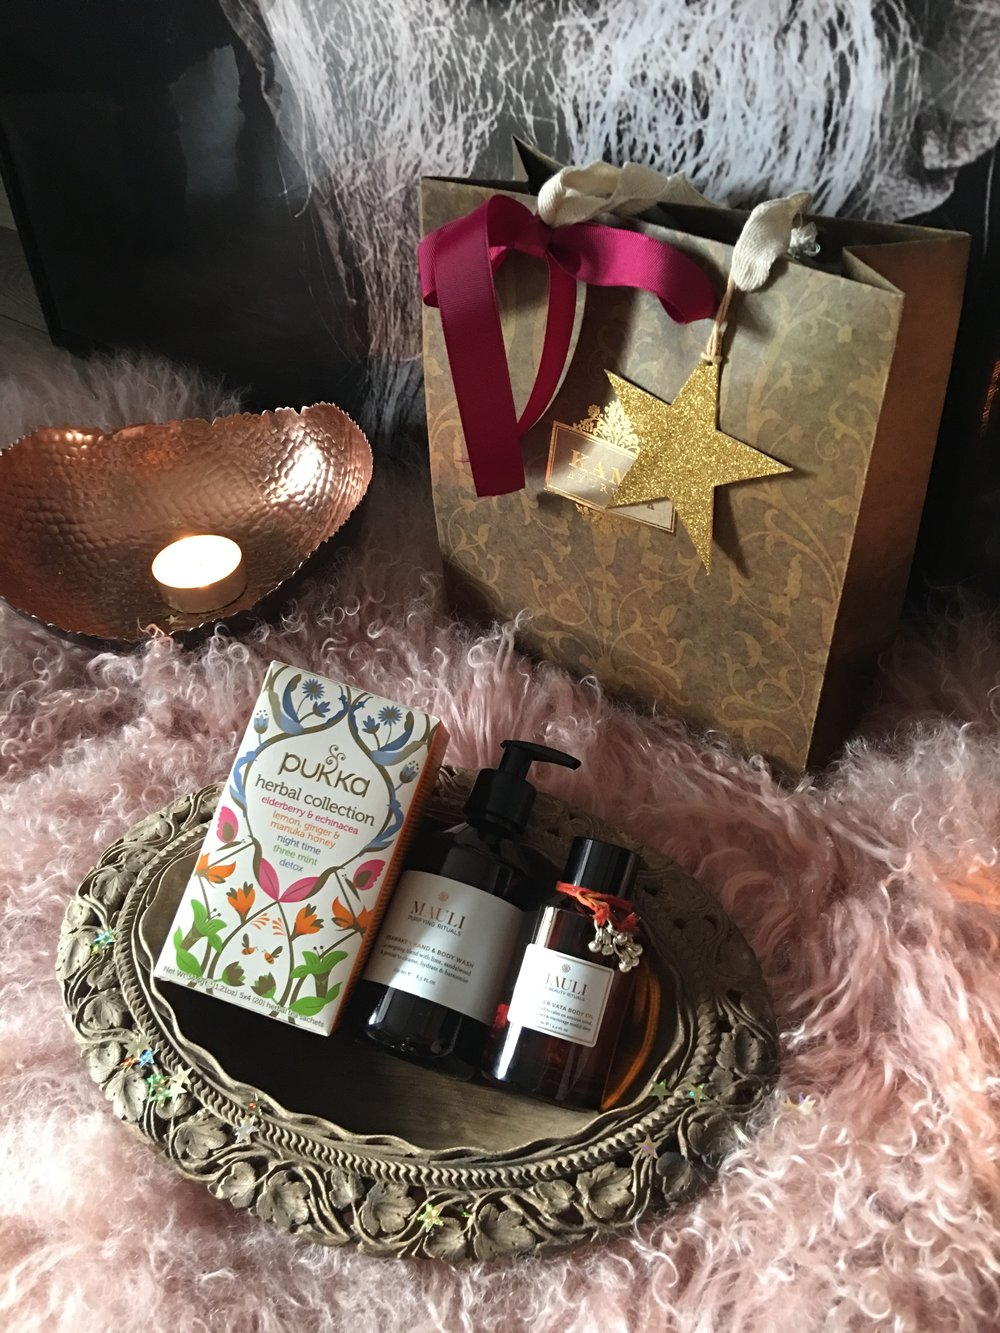 Ayurvedic Yoga Massage  (90mins), including bottle of Mauli Reawaken Body Wash and Body Oil, and a box of Pukka Herbs tea of your choice  £115